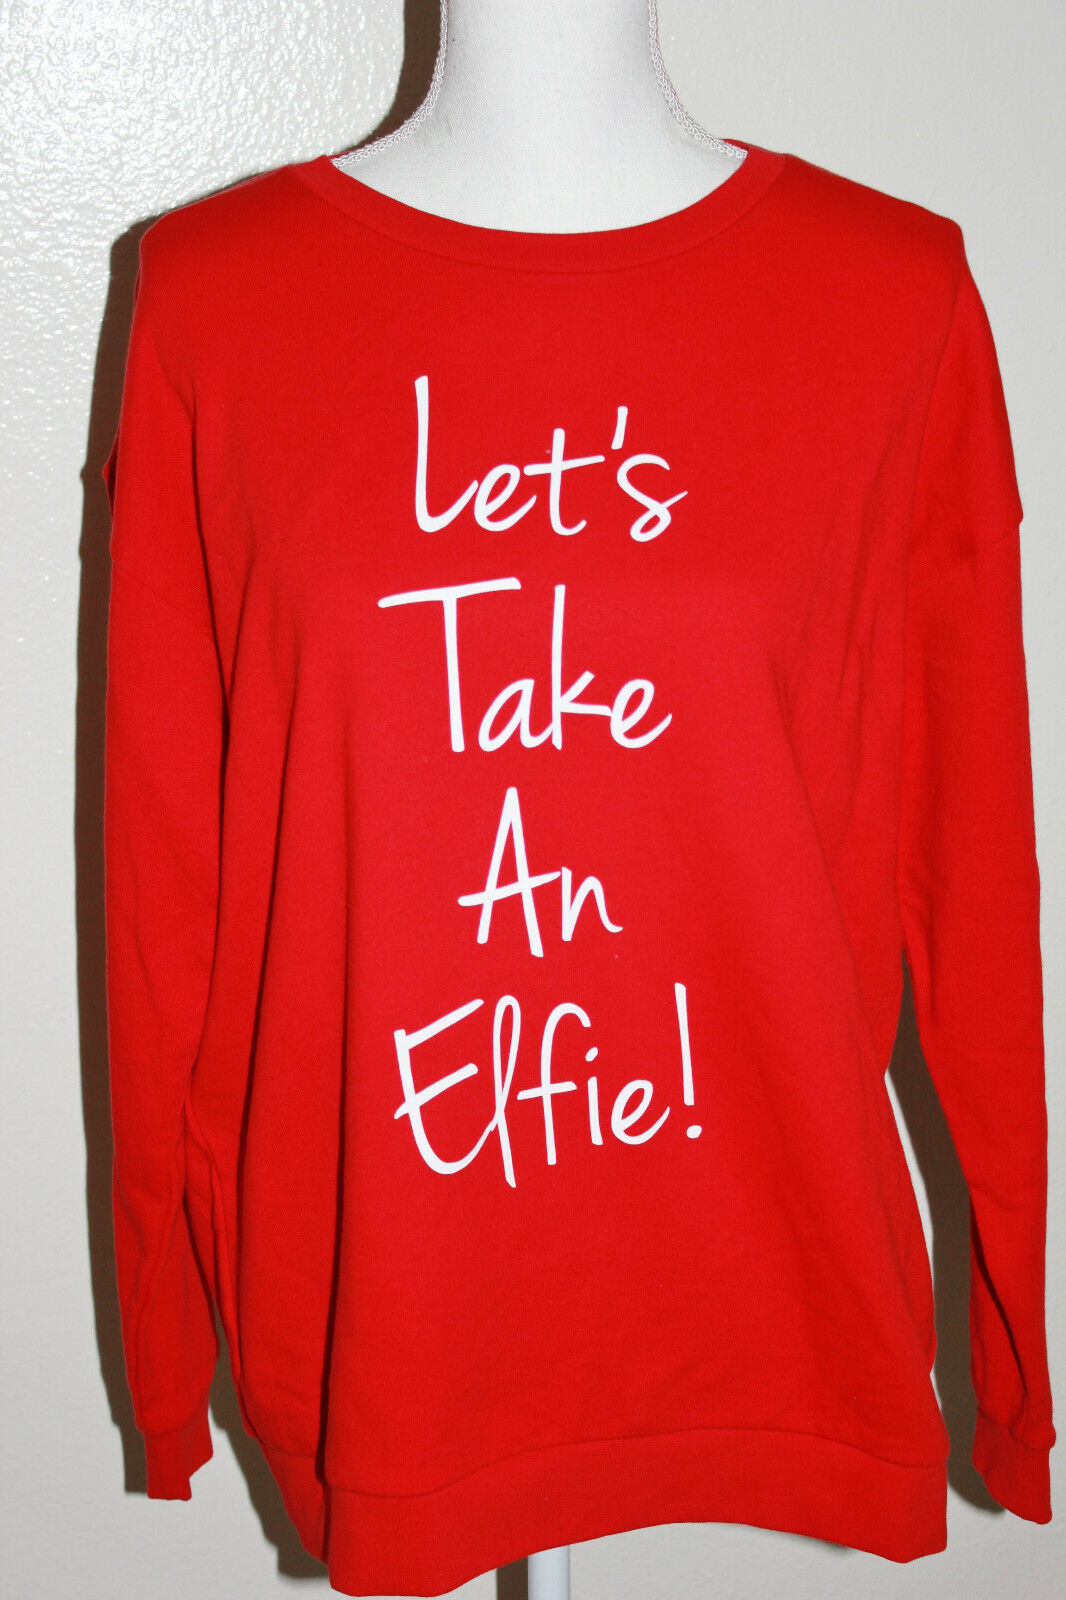 South Parade Let's Take An Elfie Red Christmas Sweatshirt Size Large